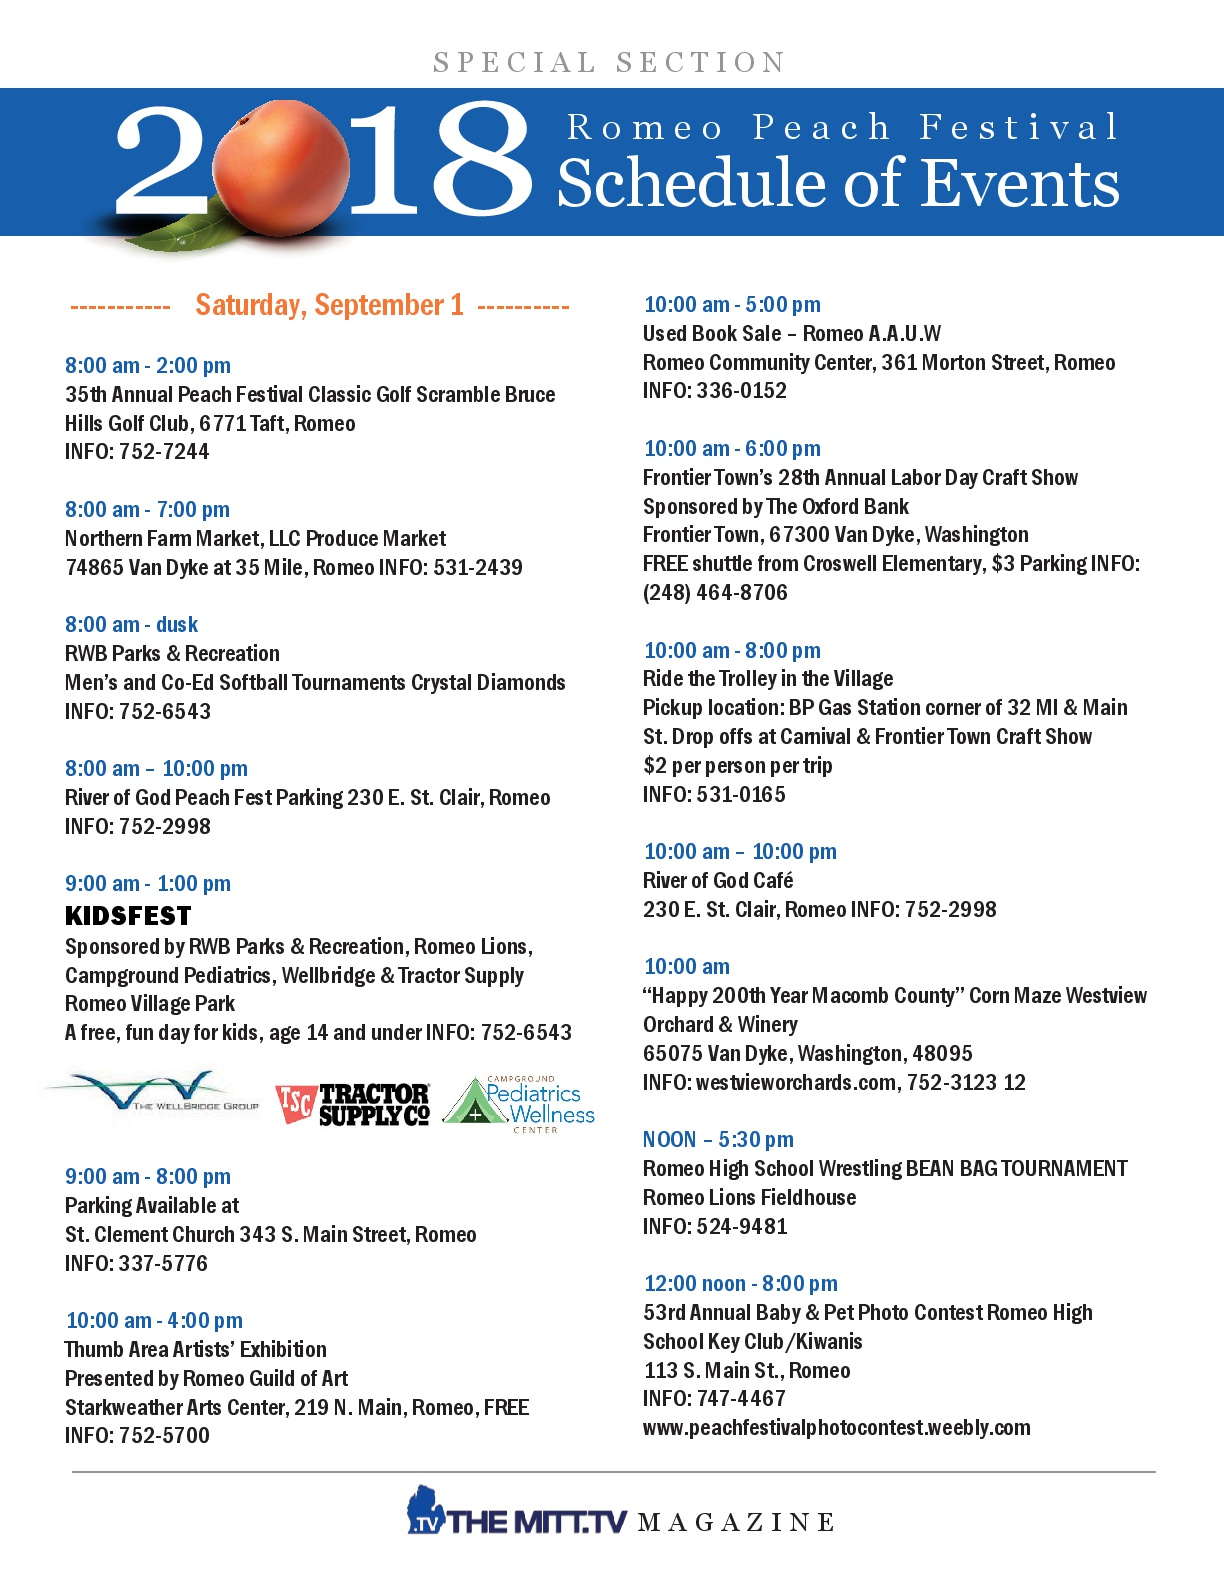 Schedule-of-Events-Pages.final-003.jpg